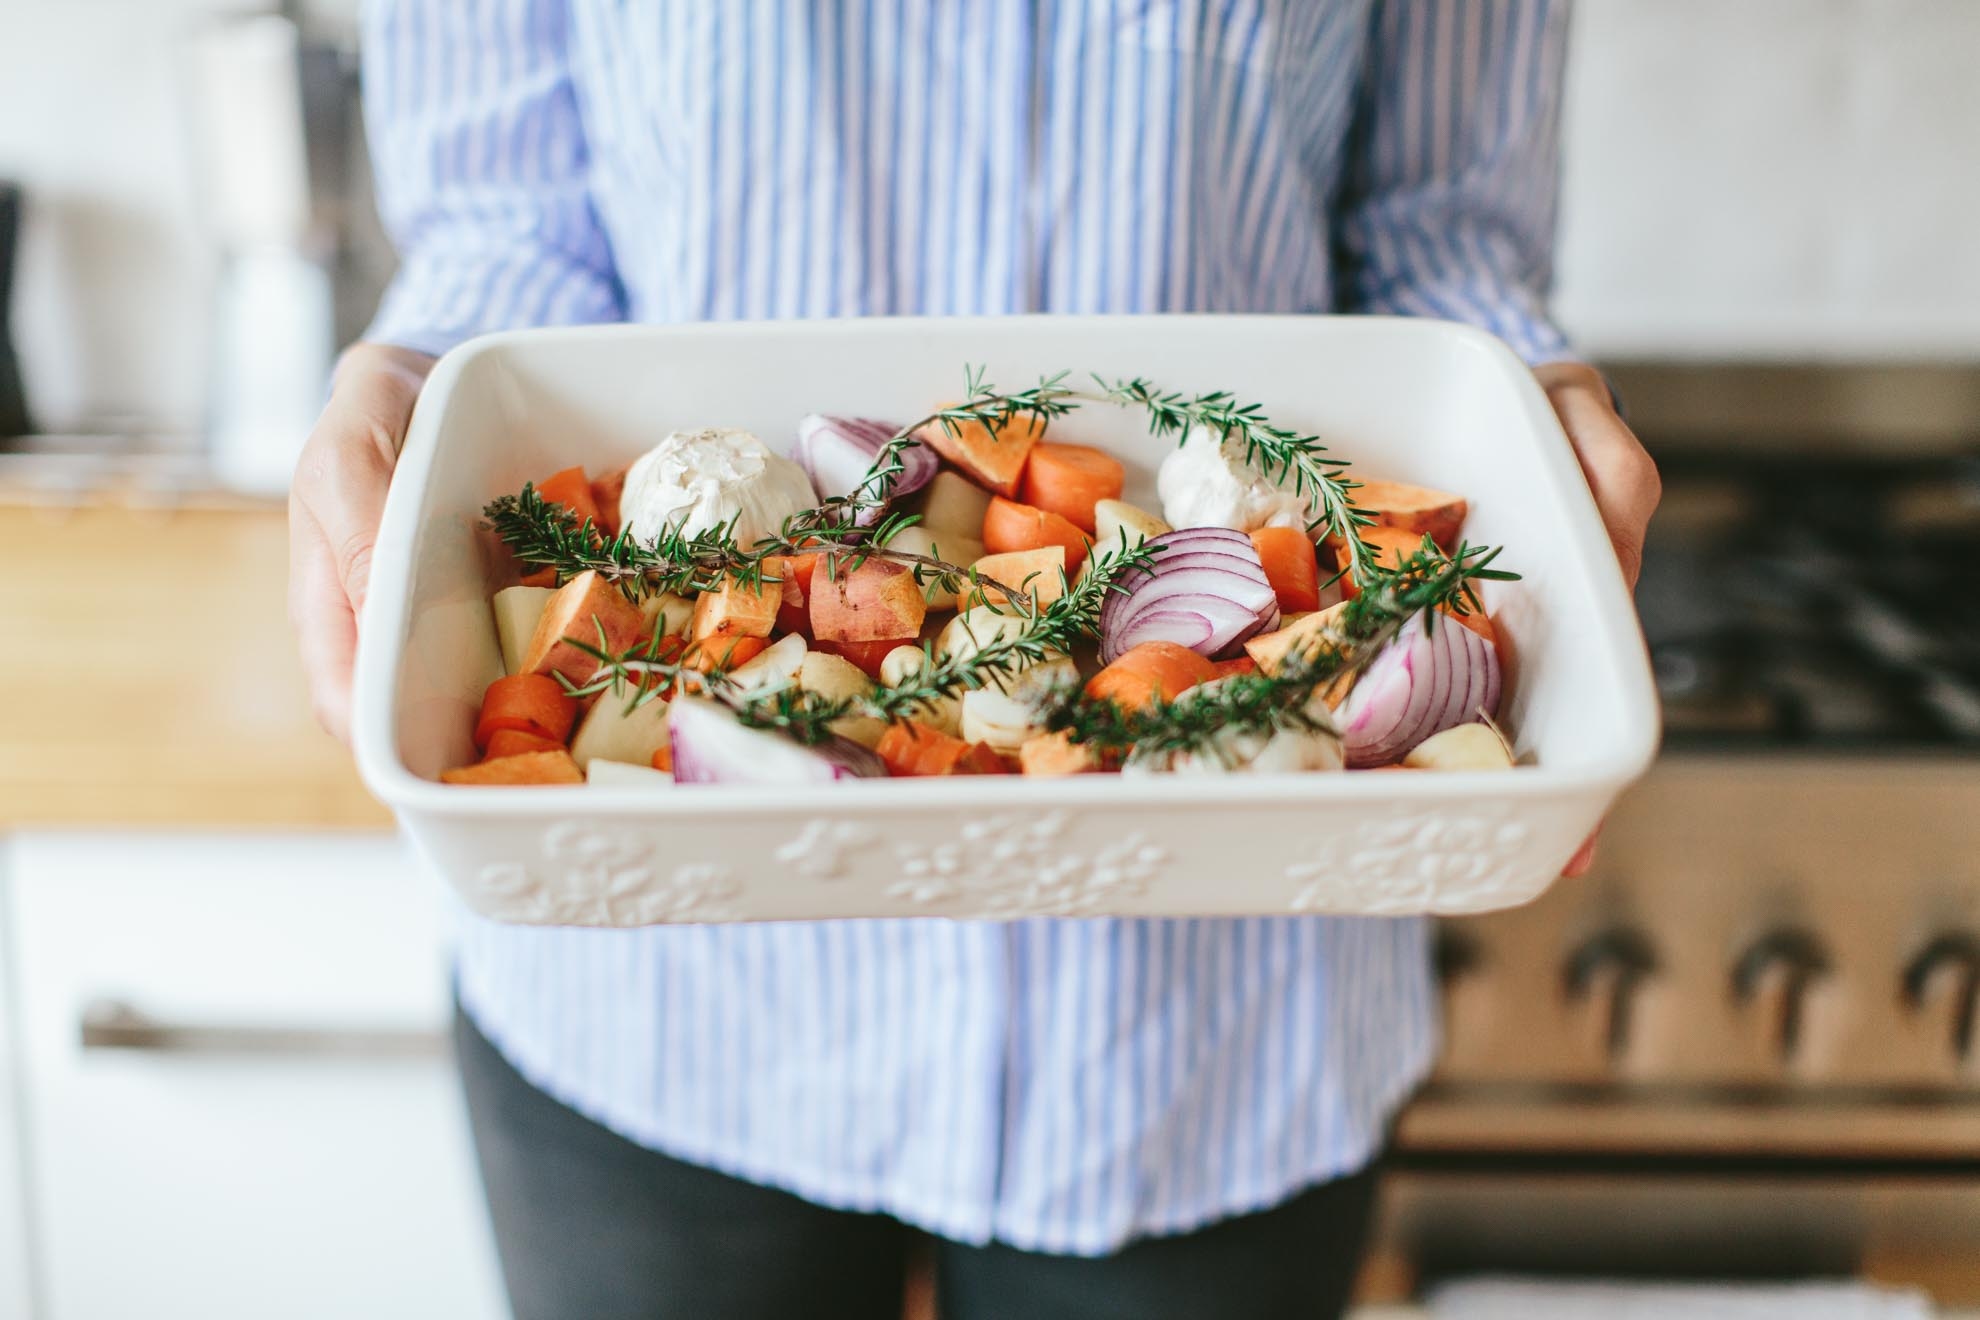 Image from Futurefoody.co.nz